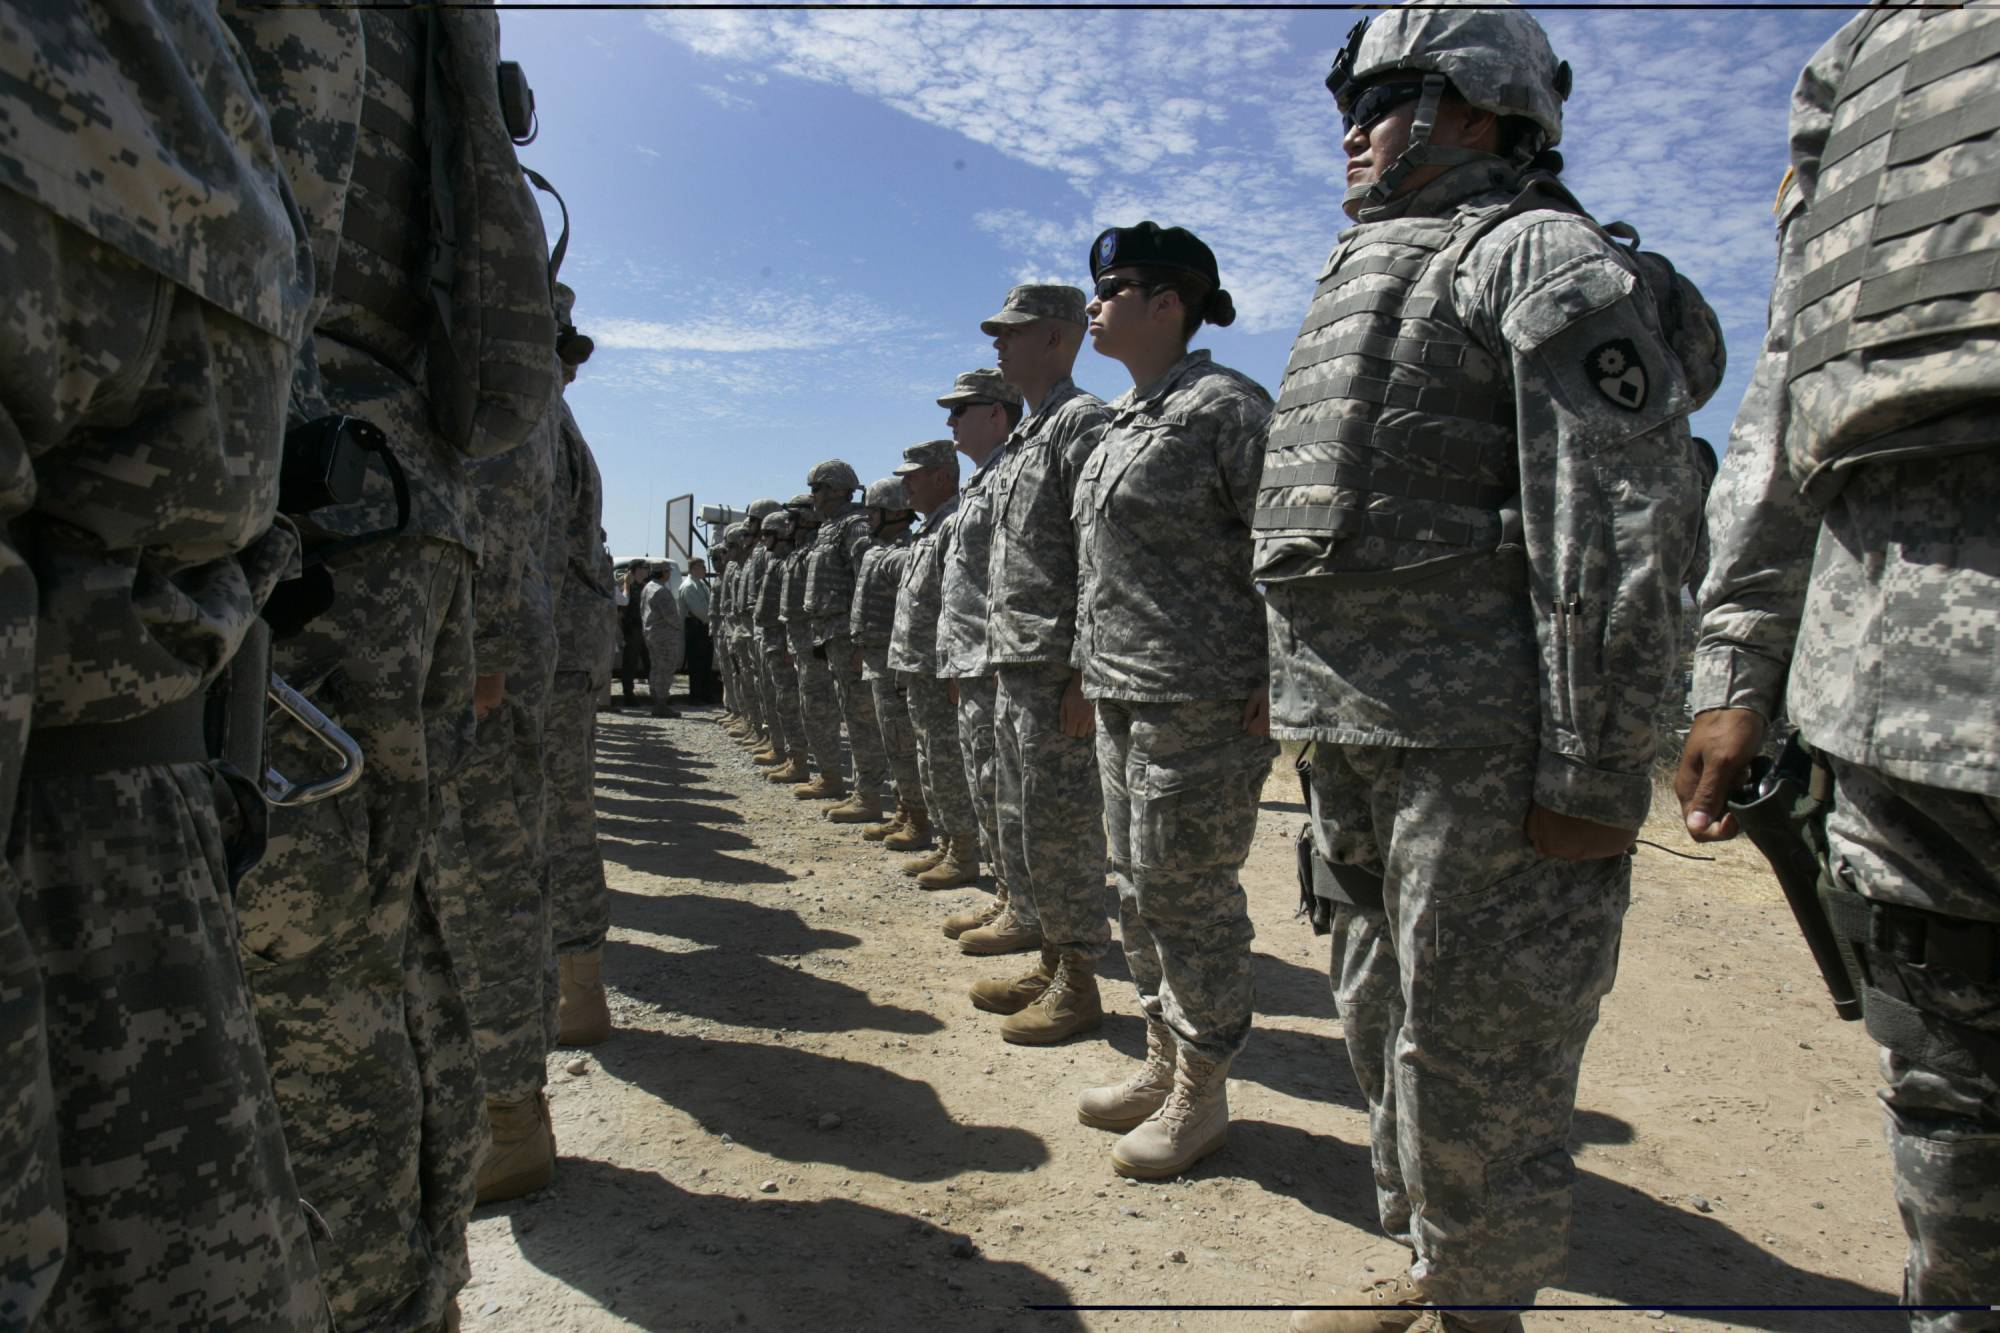 FILE - This Aug. 18, 2010, file photo shows California National Guard troops, who are part of Task Force Sierra, deployed at the border along with Border Patrol Agents near the California/Mexico border in San Diego. California Gov. Jerry Brown on Friday, Sept. 28, 2018, extended the state National Guard's participation in President Donald Trump's border deployment by six months, a low-key announcement that was made without any of the acrimony that characterized his early negotiations with the federal government. The California National Guard said in a press release that the mission will now run until the end of March 2019.  (John Gibbins/The San Diego Union-Tribune via AP, File)